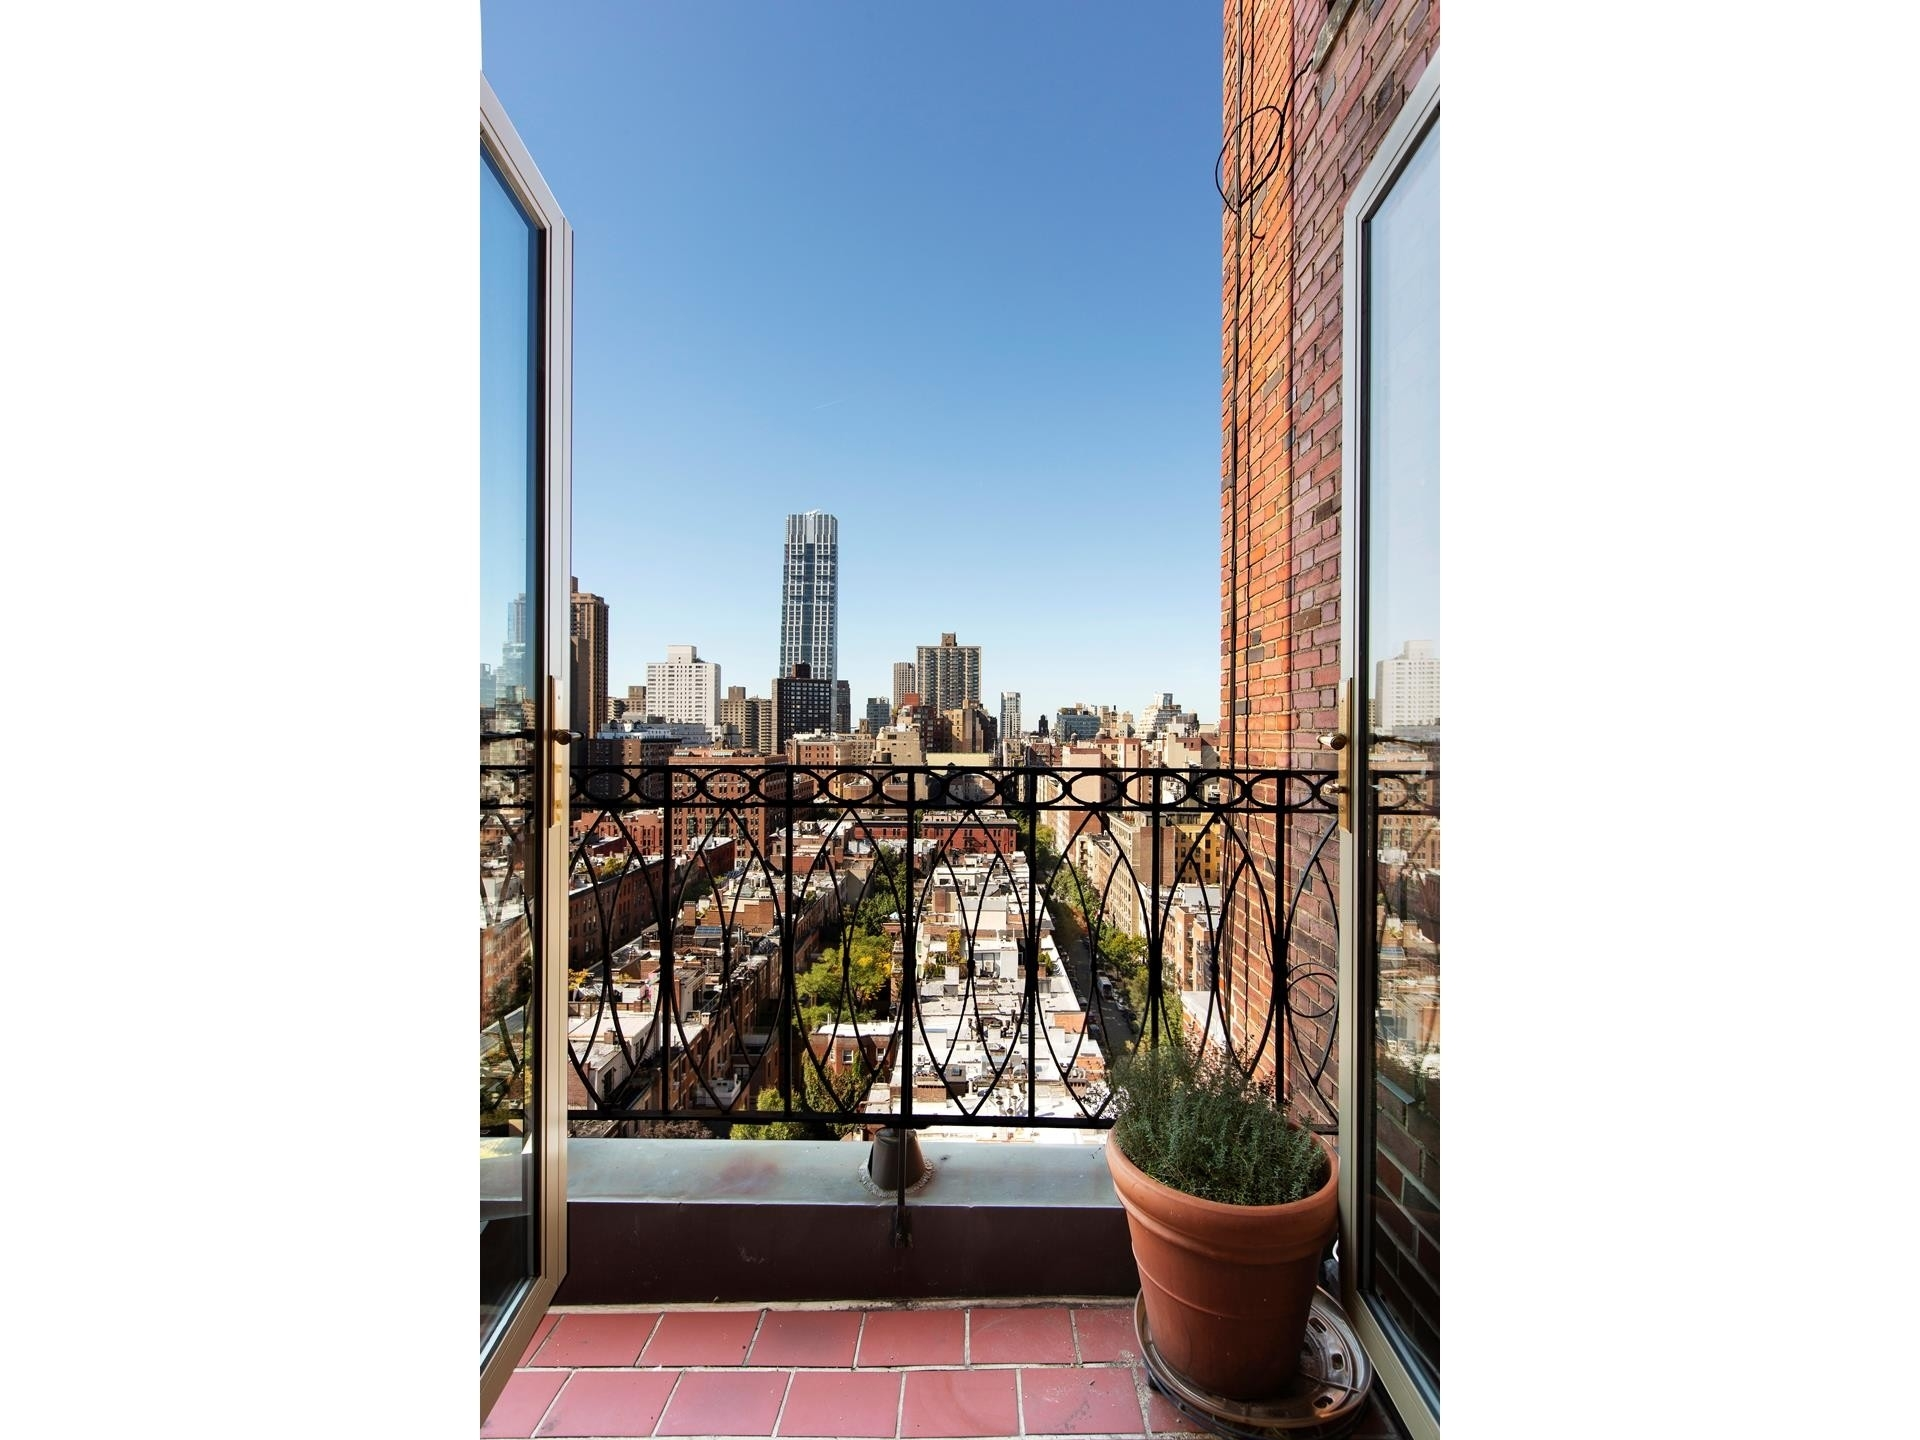 5. Co-op Properties 為 特賣 在 101 Central Park West, 16G Lincoln Square, 纽约, NY 10023